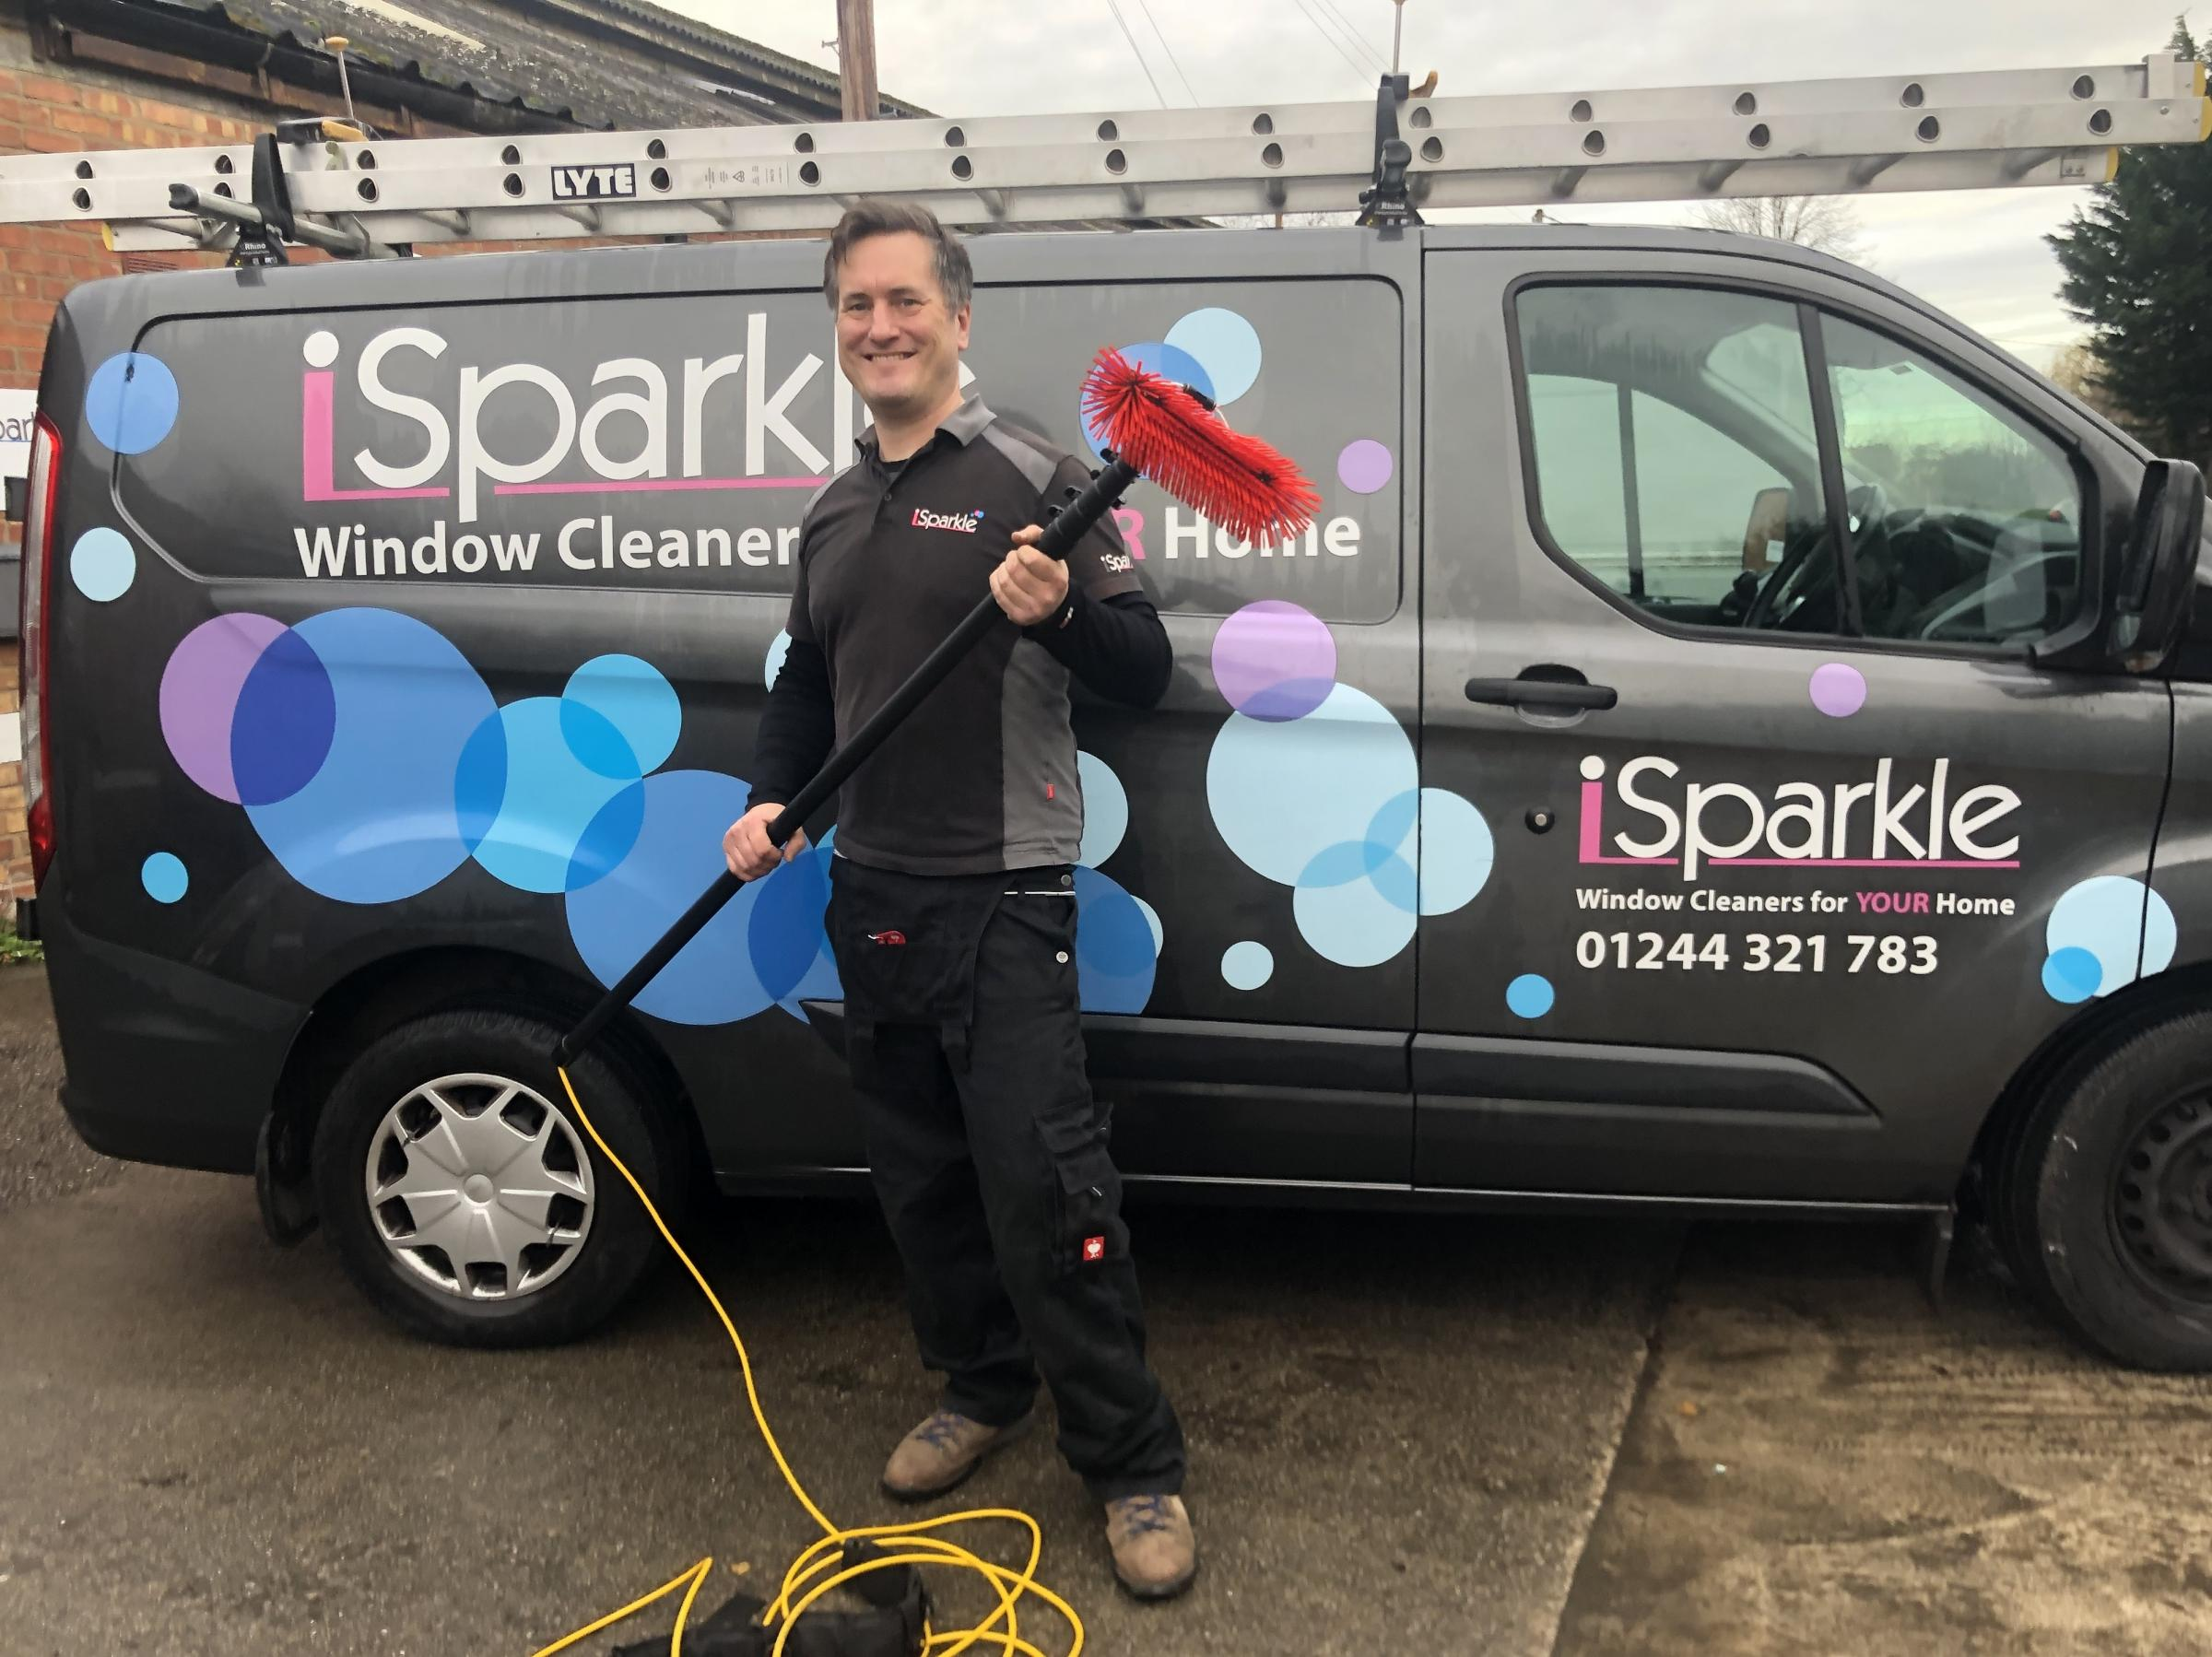 Chester window cleaning firm to bring Christmas cheer to community heroes